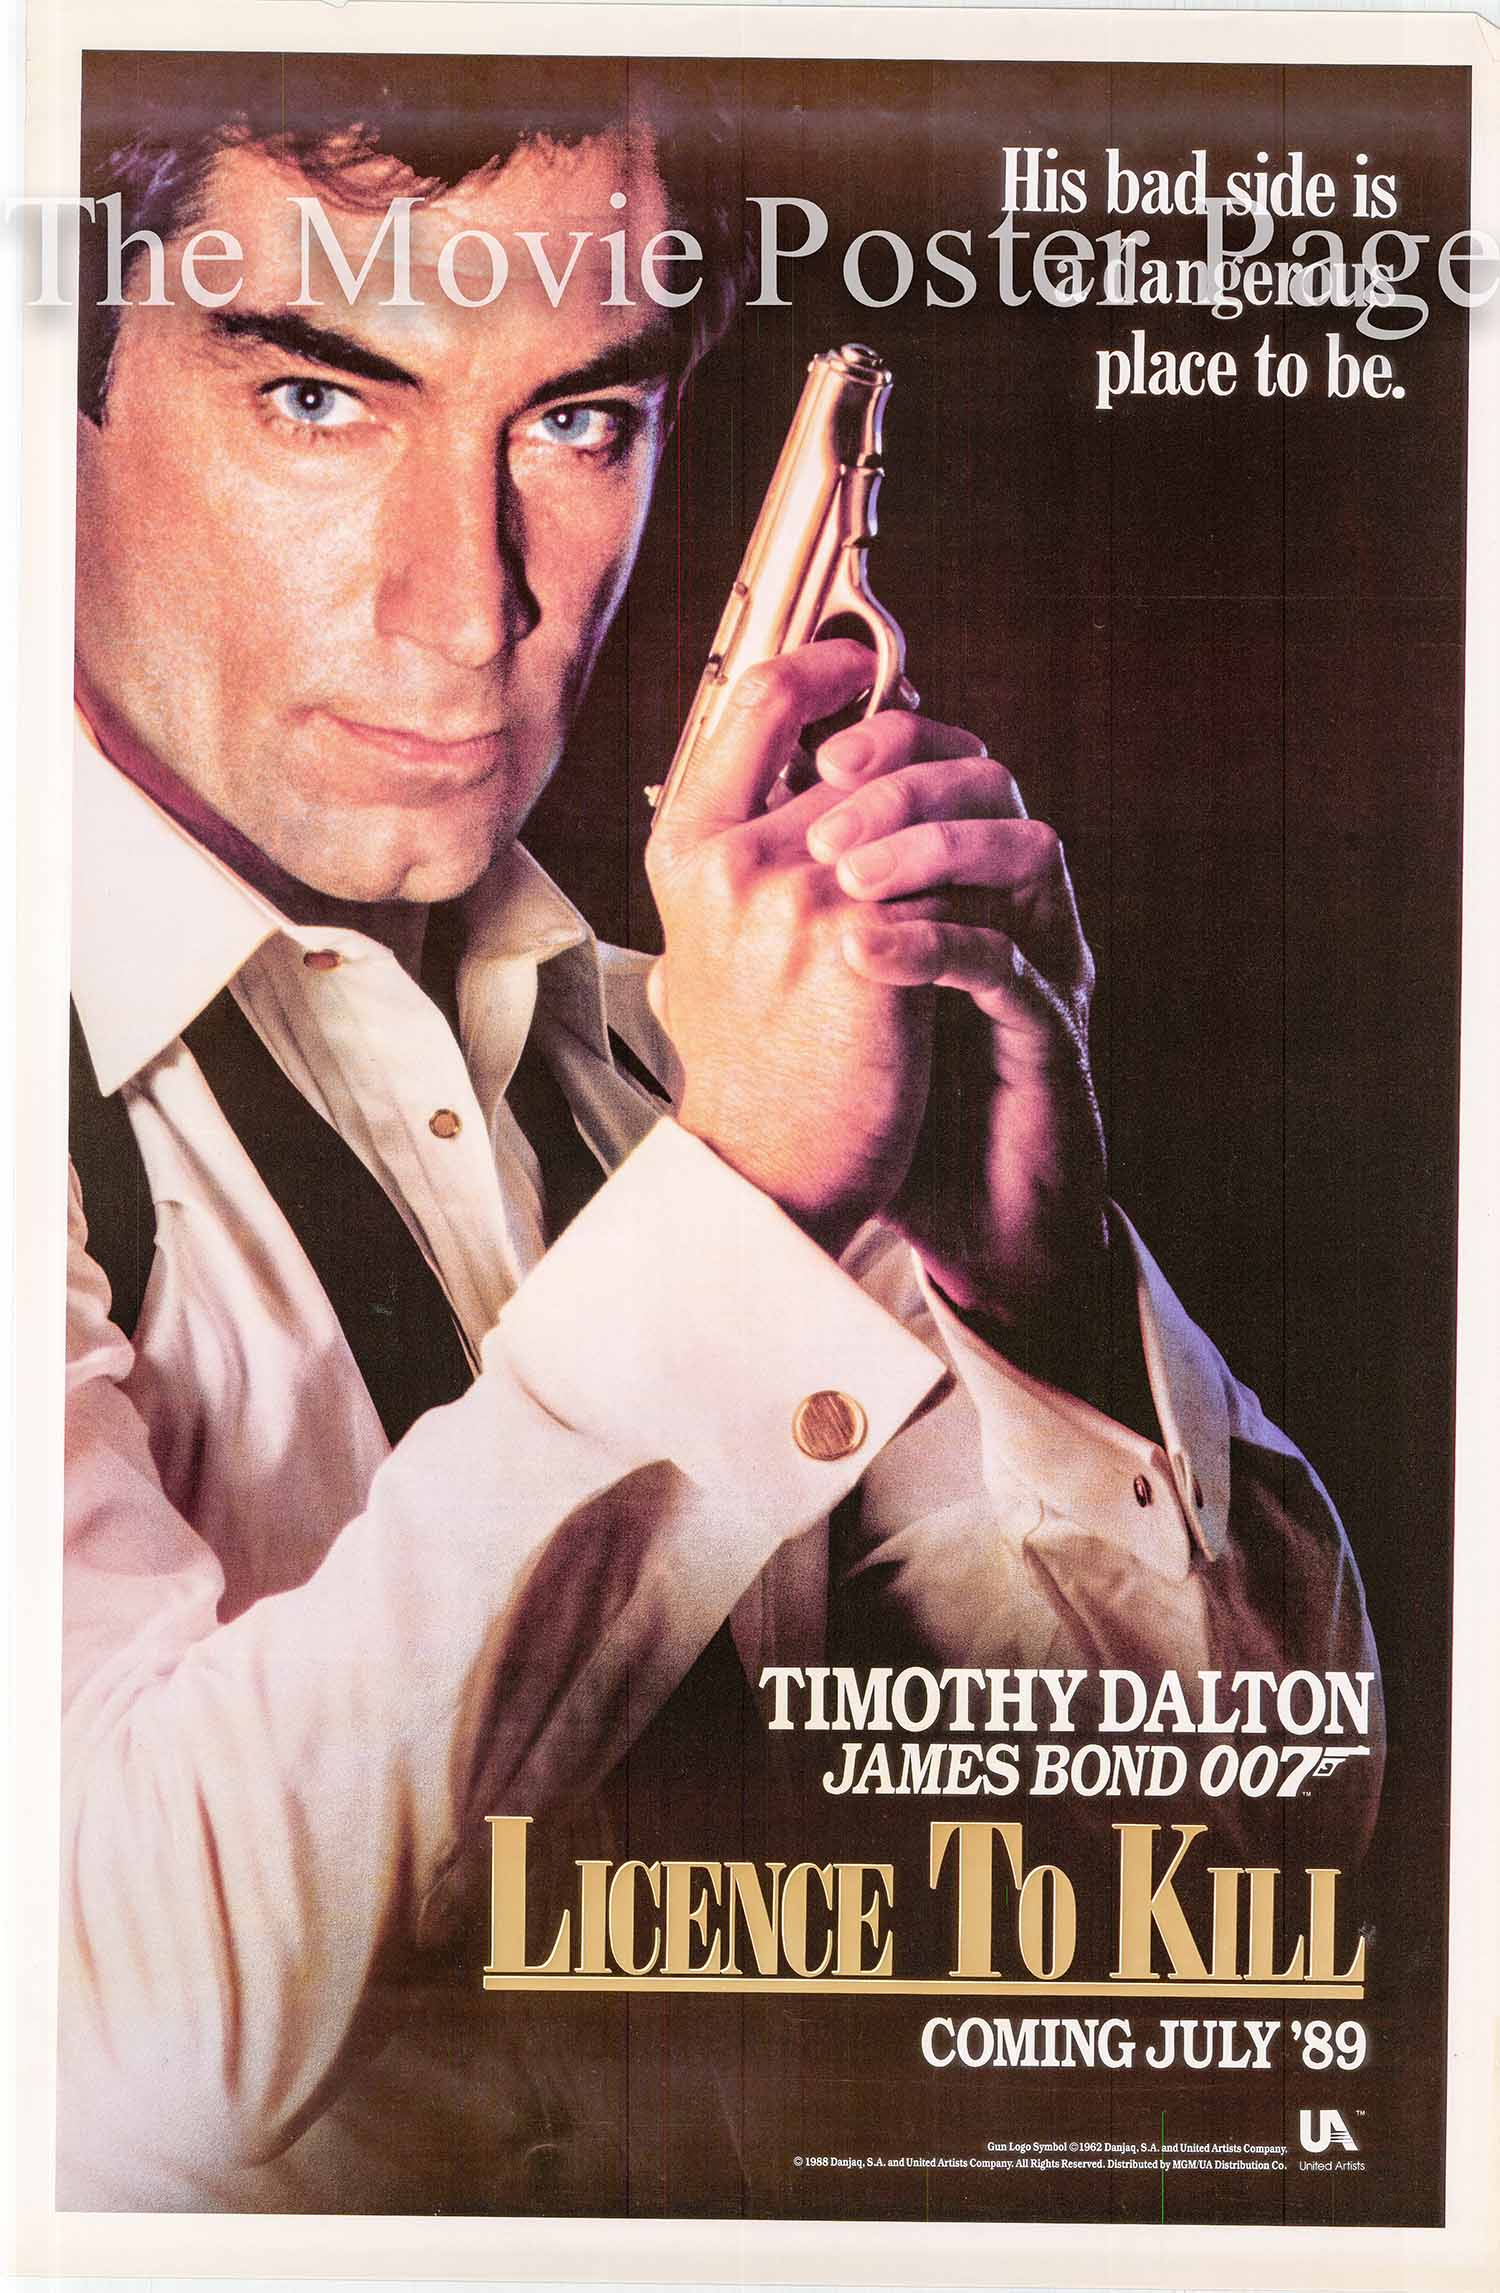 This is a UK advance promotional poster for the 1989 John Glen film License to Kill starring Timonthy Dalton.